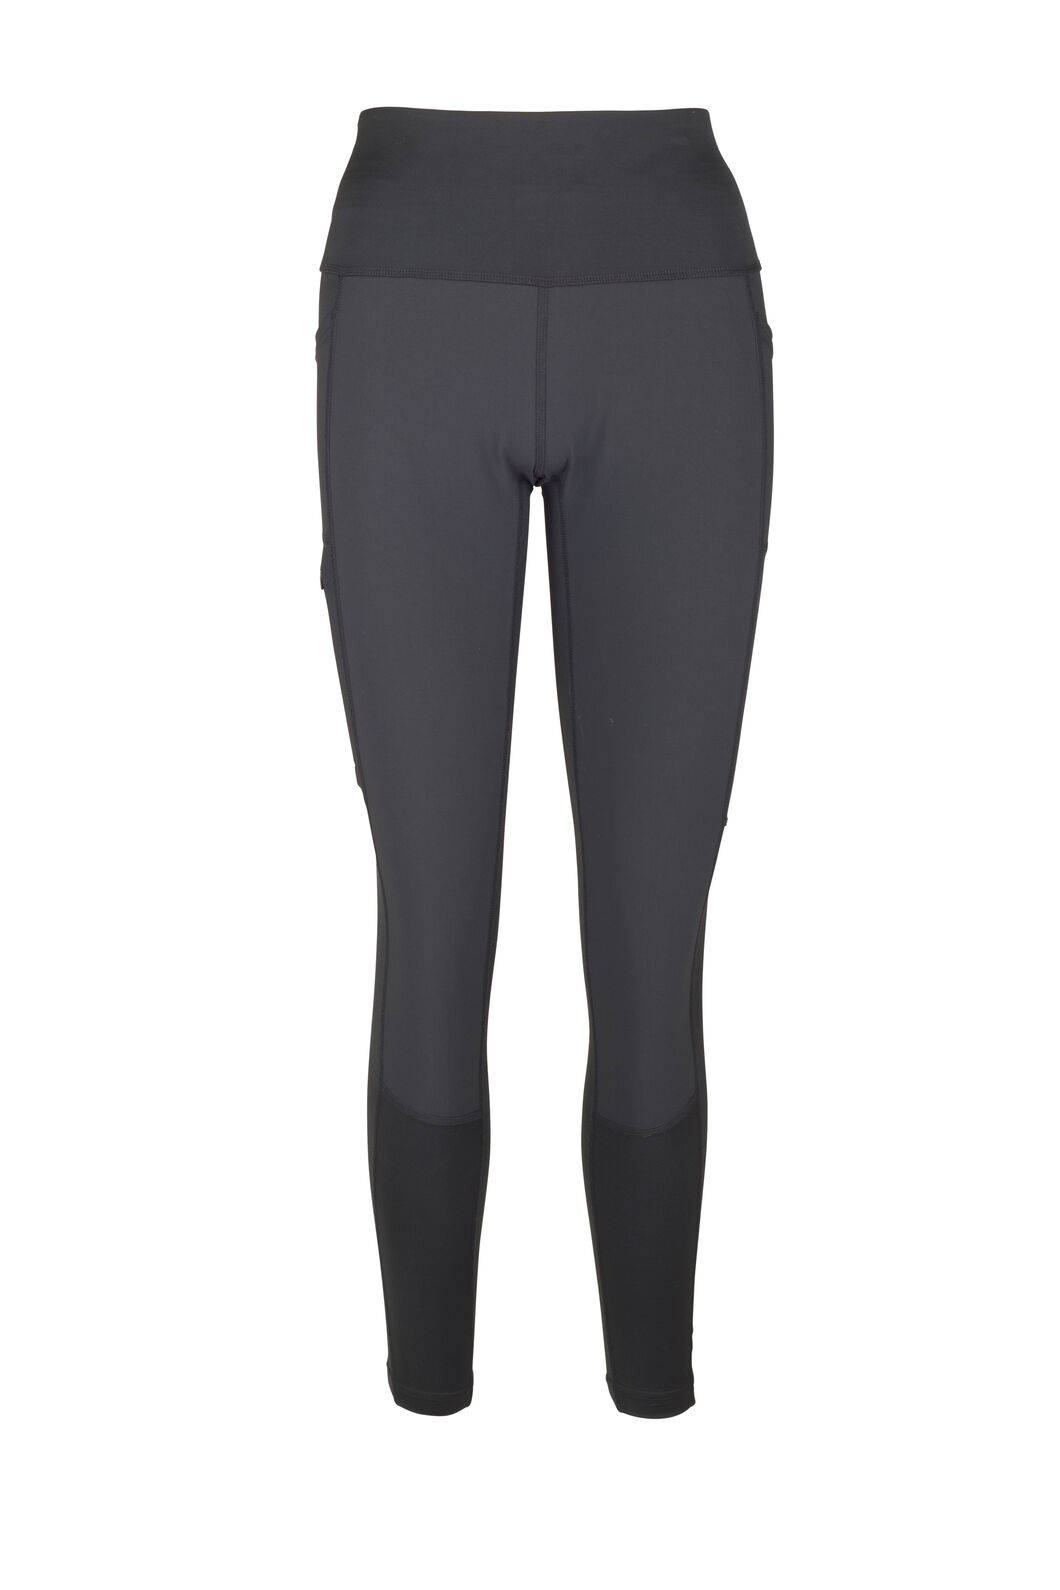 Macpac There and Back Tights - Women's, Black, hi-res